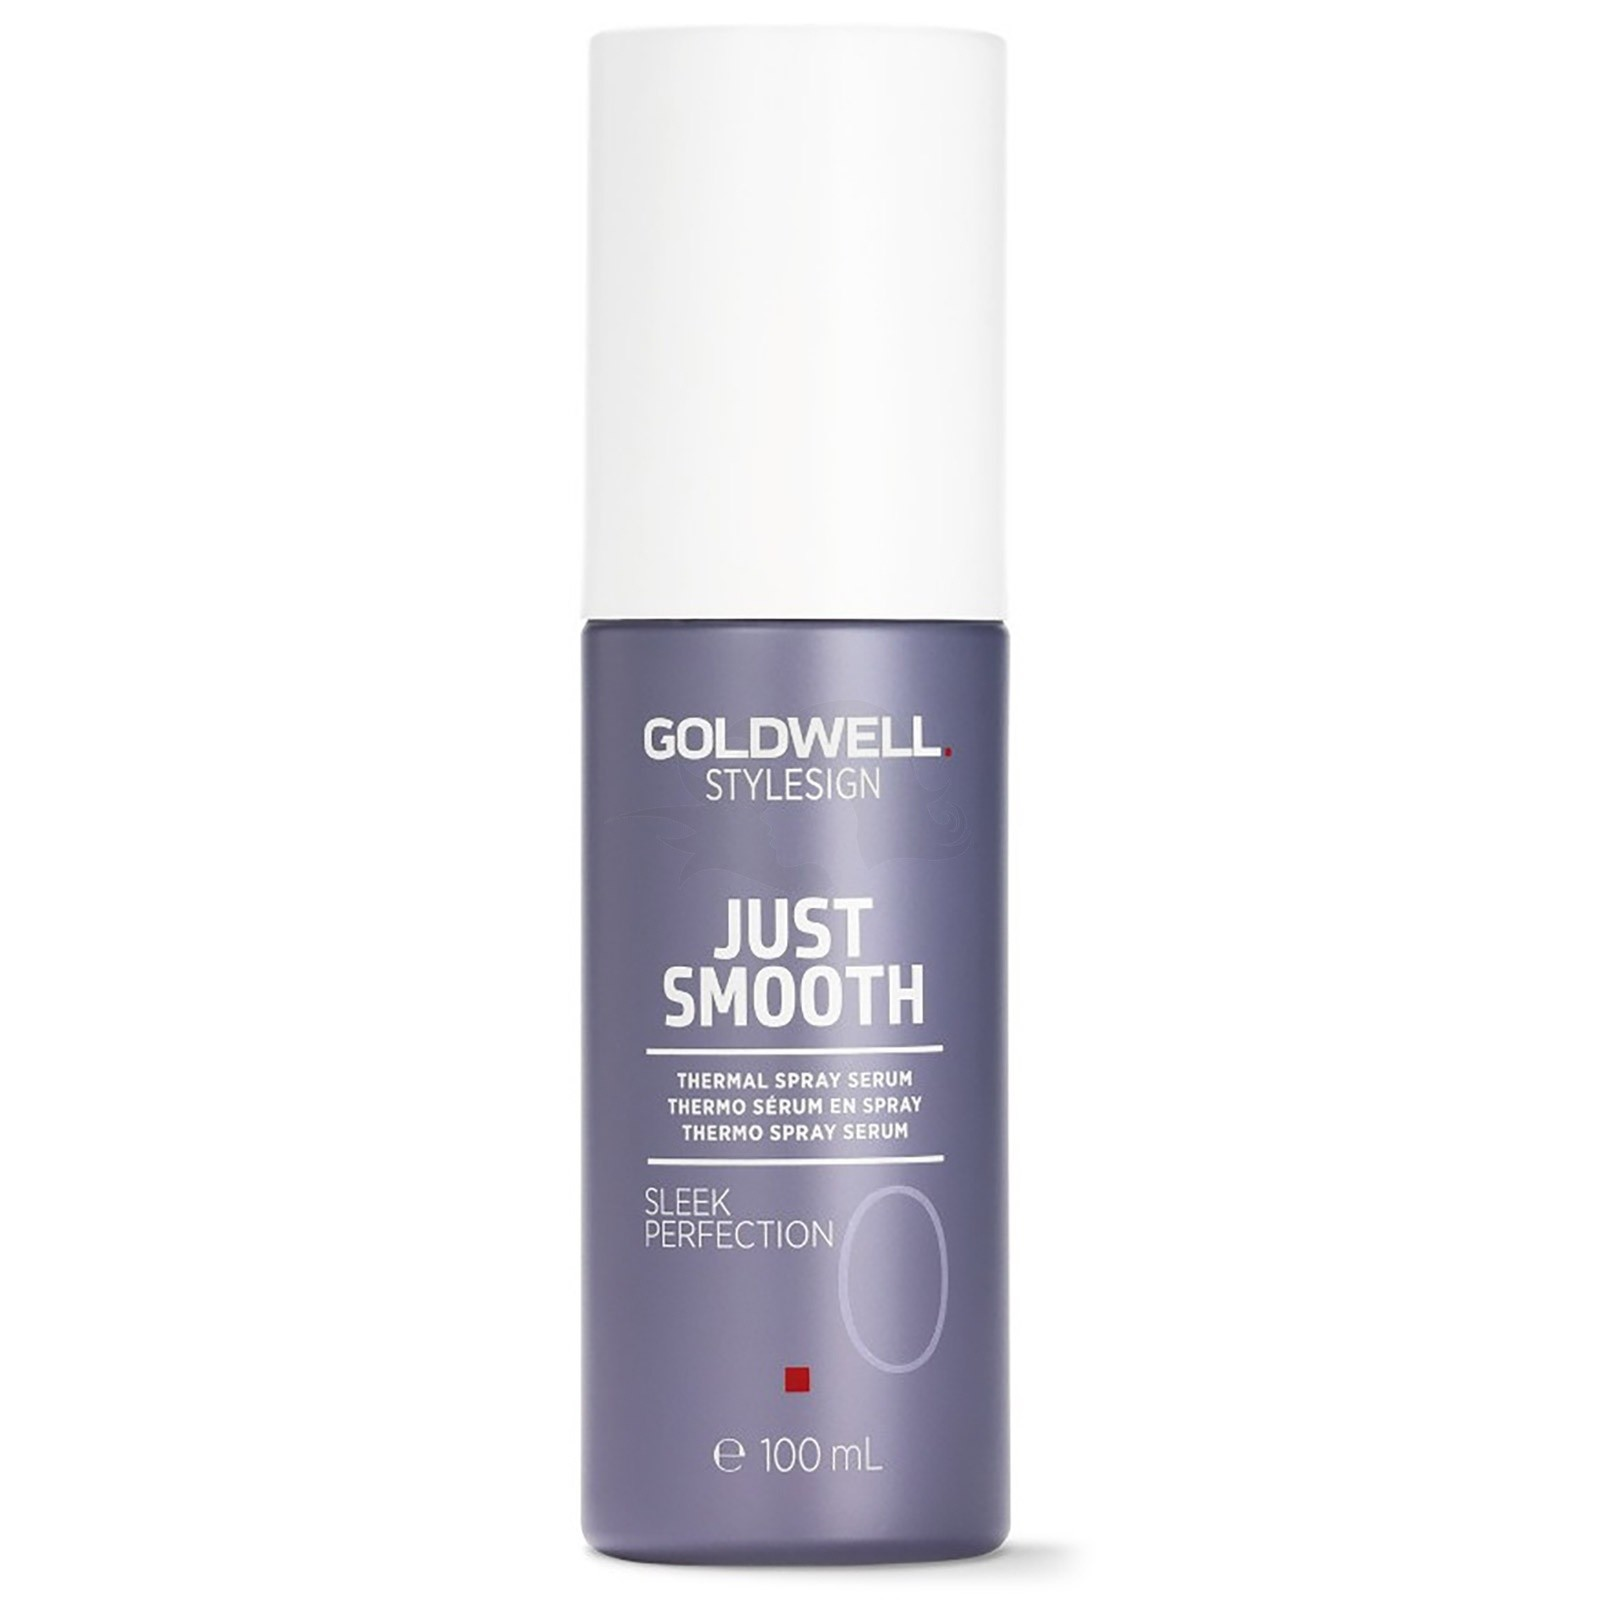 Goldwell Just Smooth Sleek Perfection 100 ml